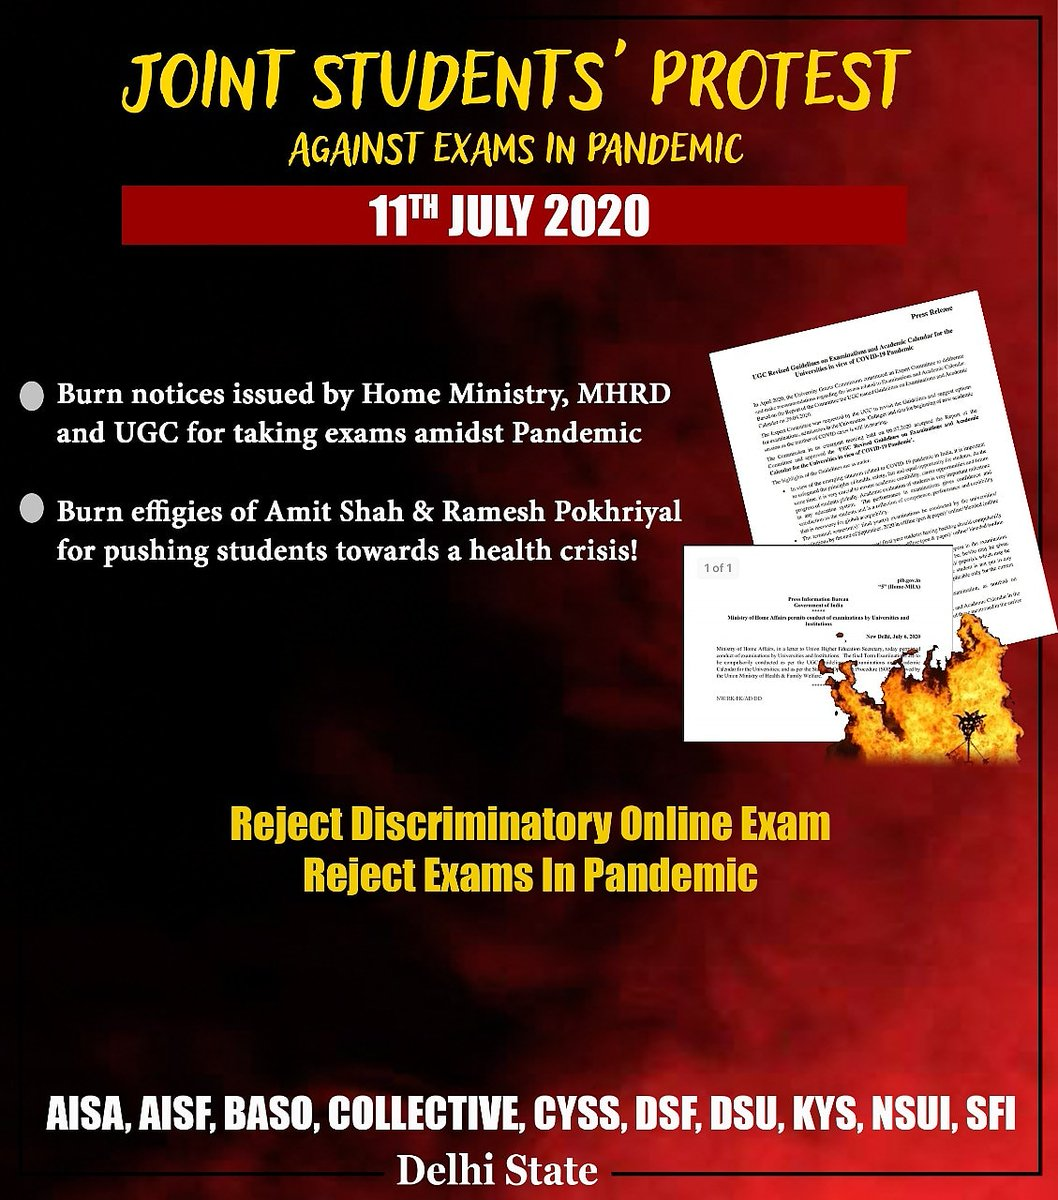 Join 'Students' Protest'  Against Exams In Pandemic  11th July  ●Burn notice of Home ministry, @HRDMinistry and UGC for taking exams in Pandemic  ●Burn effigies of @AmitShah & @DrRPNishank for pushing students towards a health crisis!  #CancelFinalYearExams  #AISA #AISAAudpic.twitter.com/jIU9jSjpCh